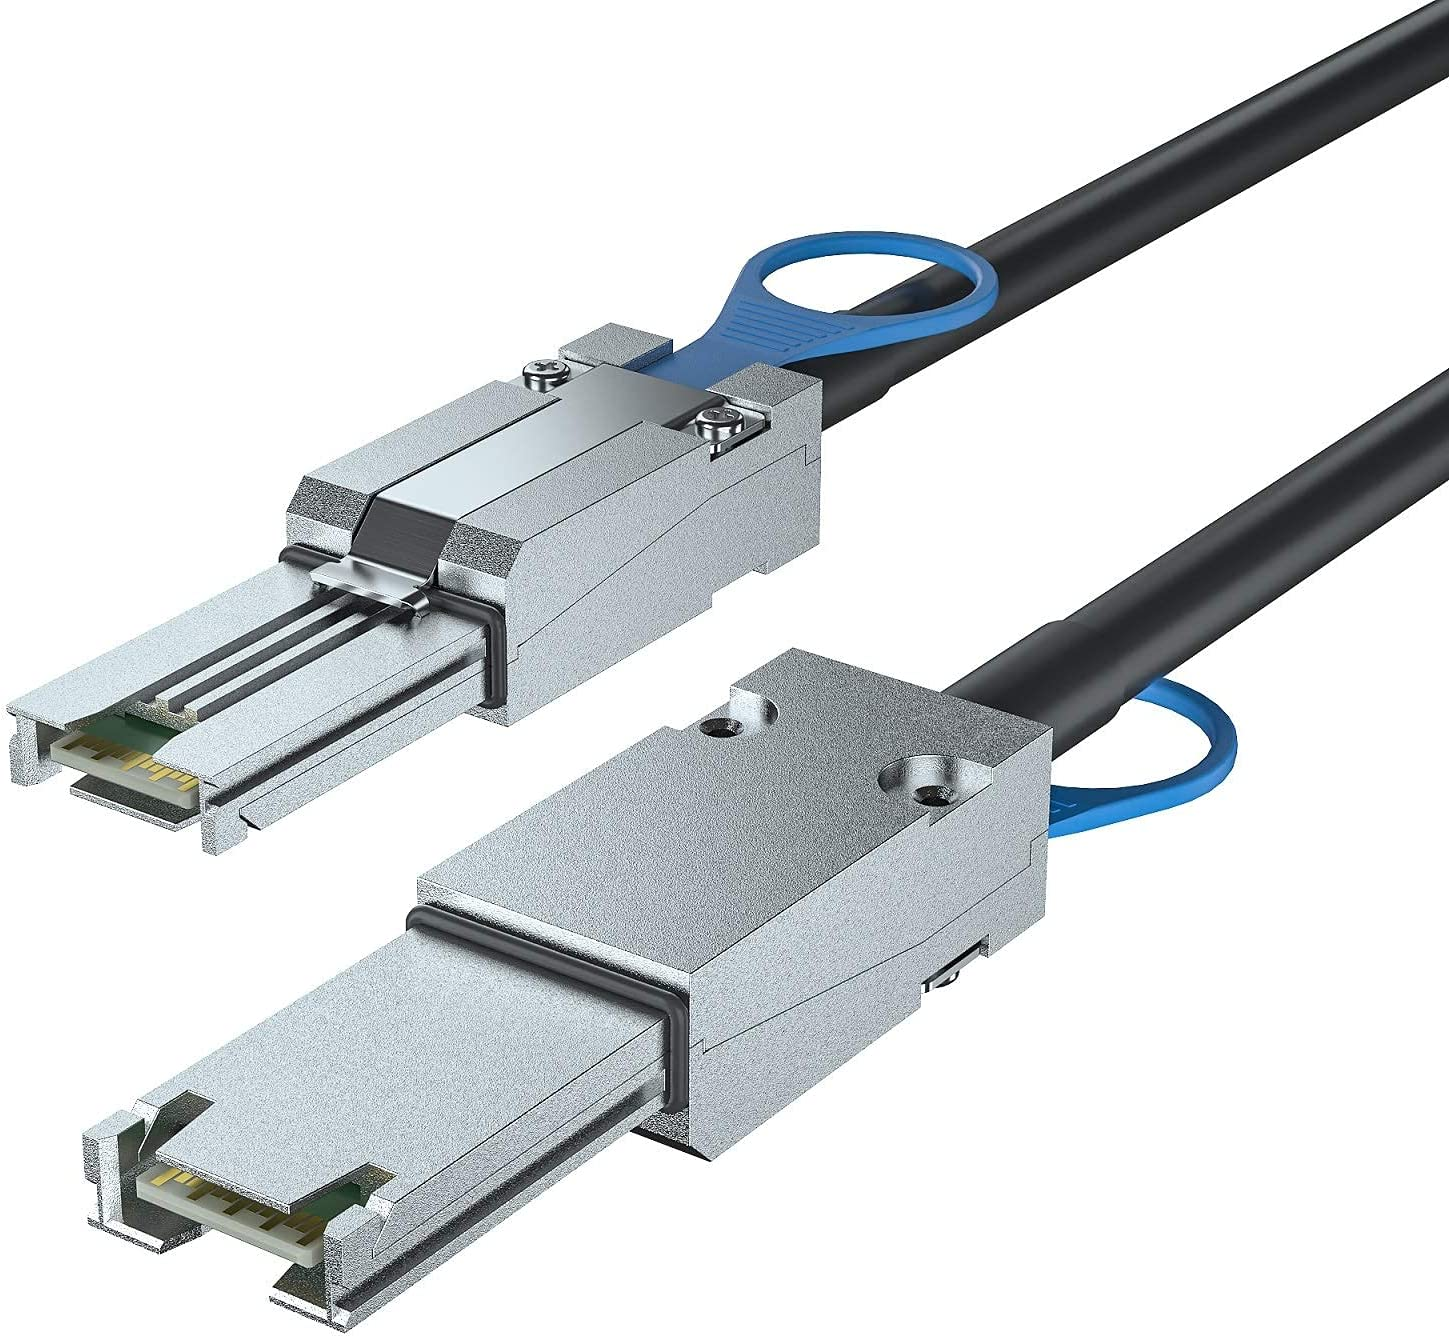 Don't miss the campaign 6G External Mini SAS SFF-8088 Max 87% OFF Cable 0.5-m 100-Ohm to